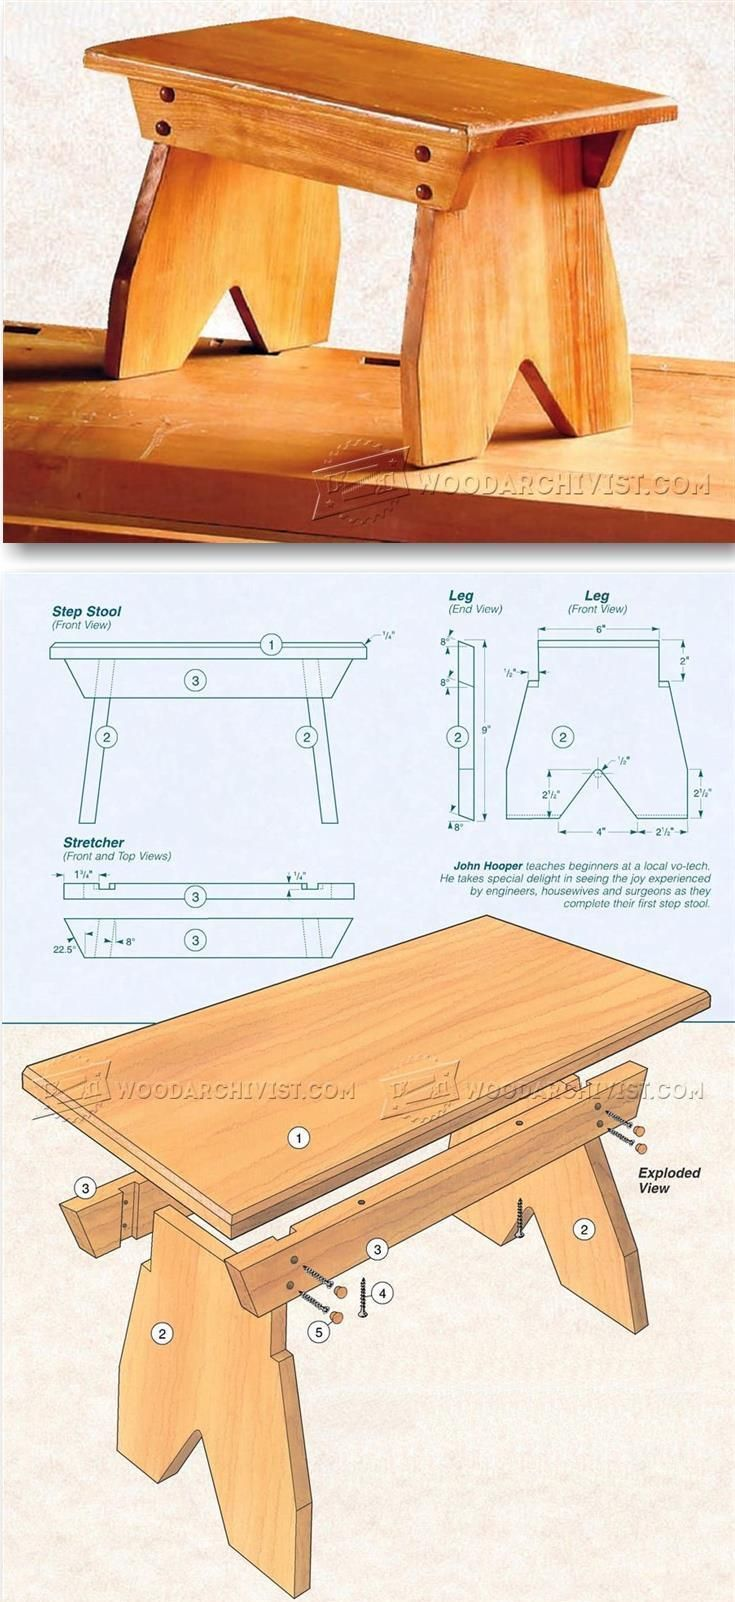 Understand Woodworking Plans And Designs Woodworking